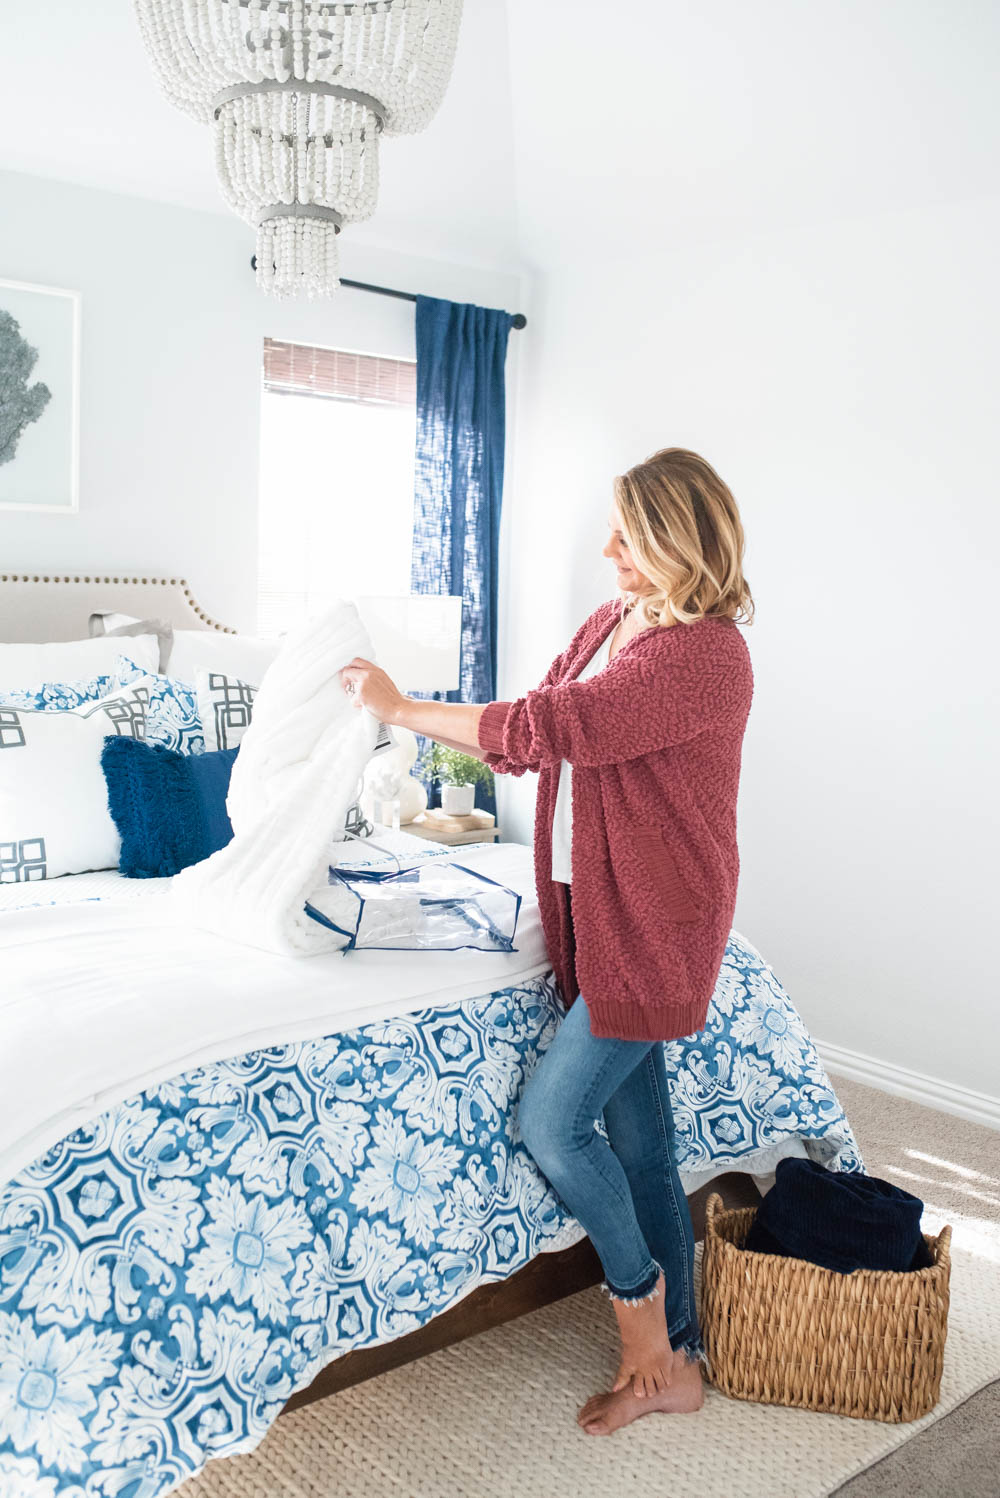 Grab my list of bedroom basics and shop the huge White Sale at Kohl's. #ad #KohlsHomeSale